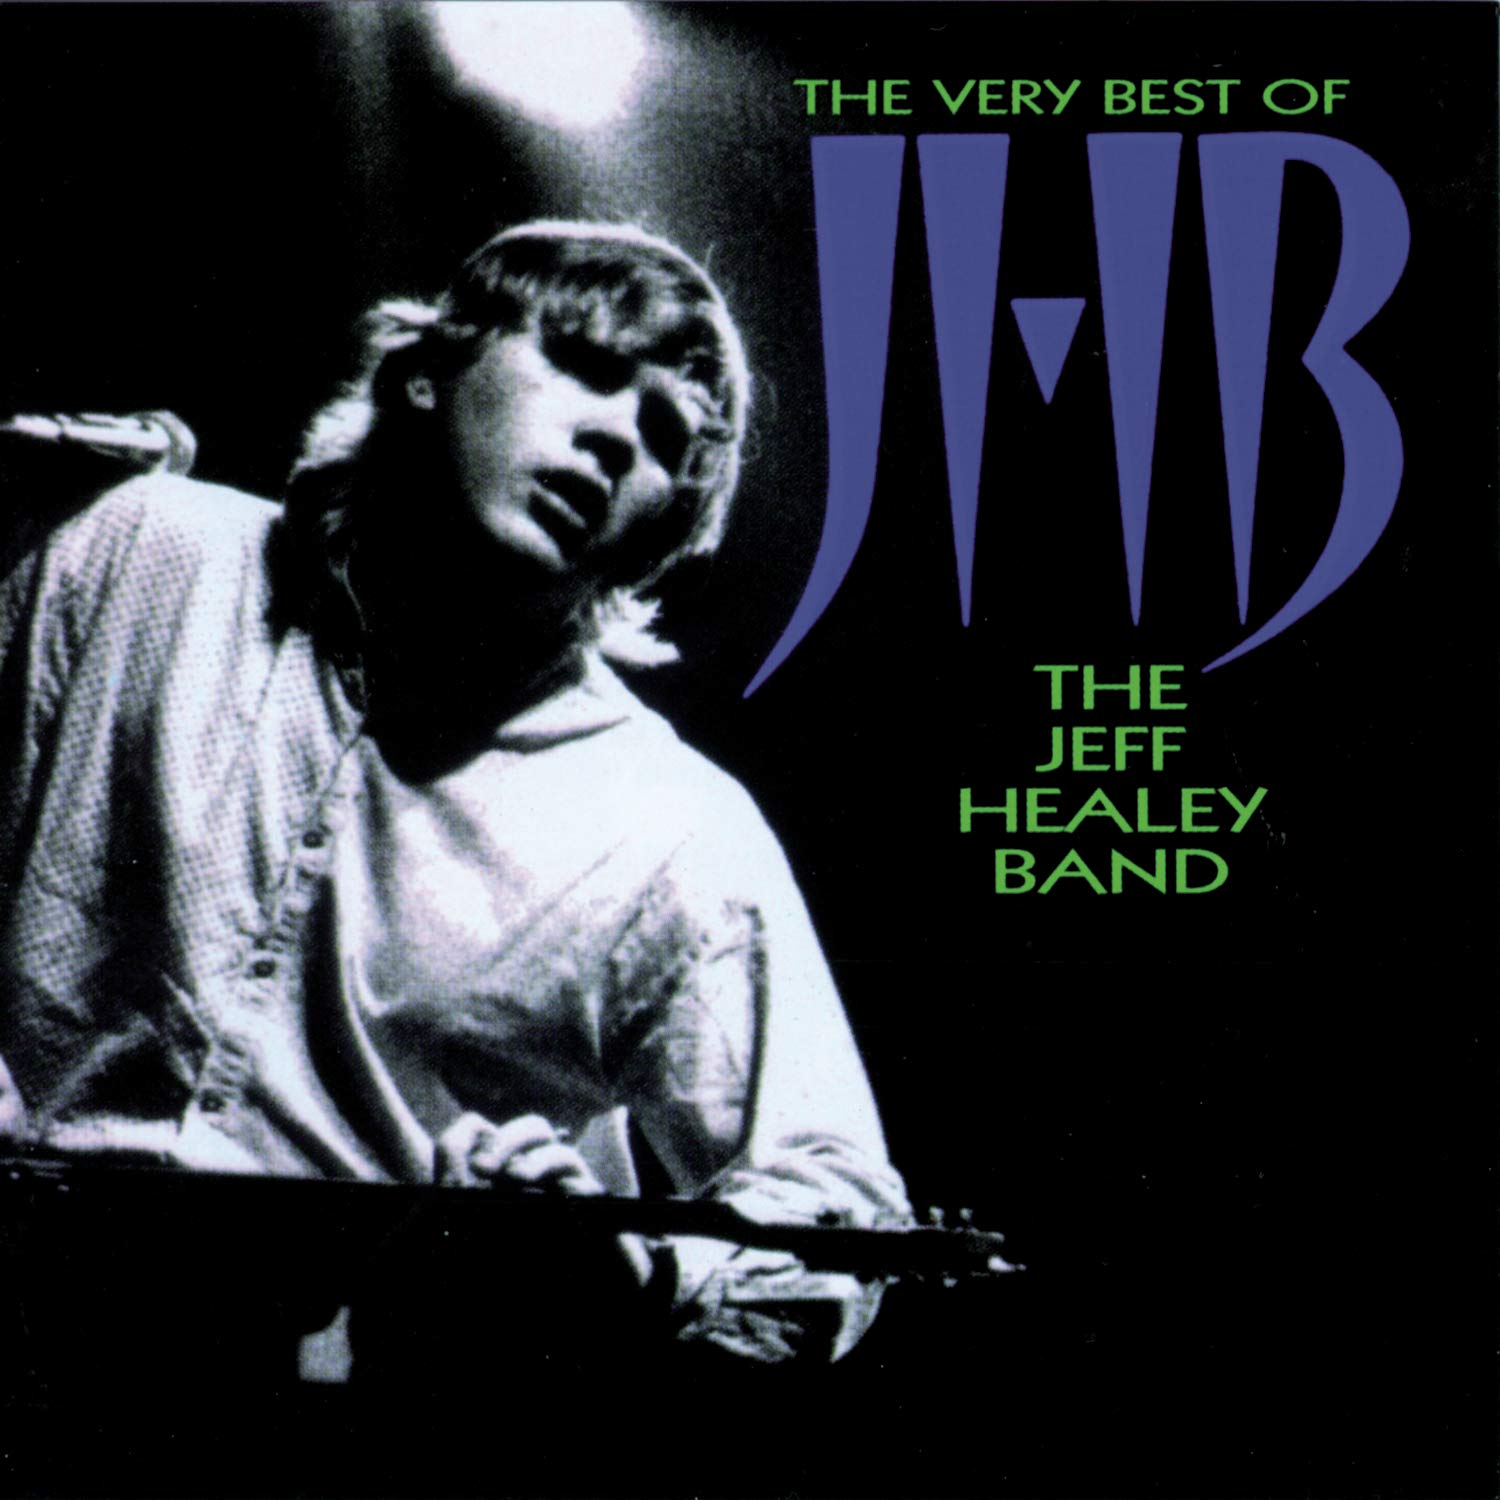 The Jeff Healey Band – The Very Best Of JHB (1998) [FLAC]